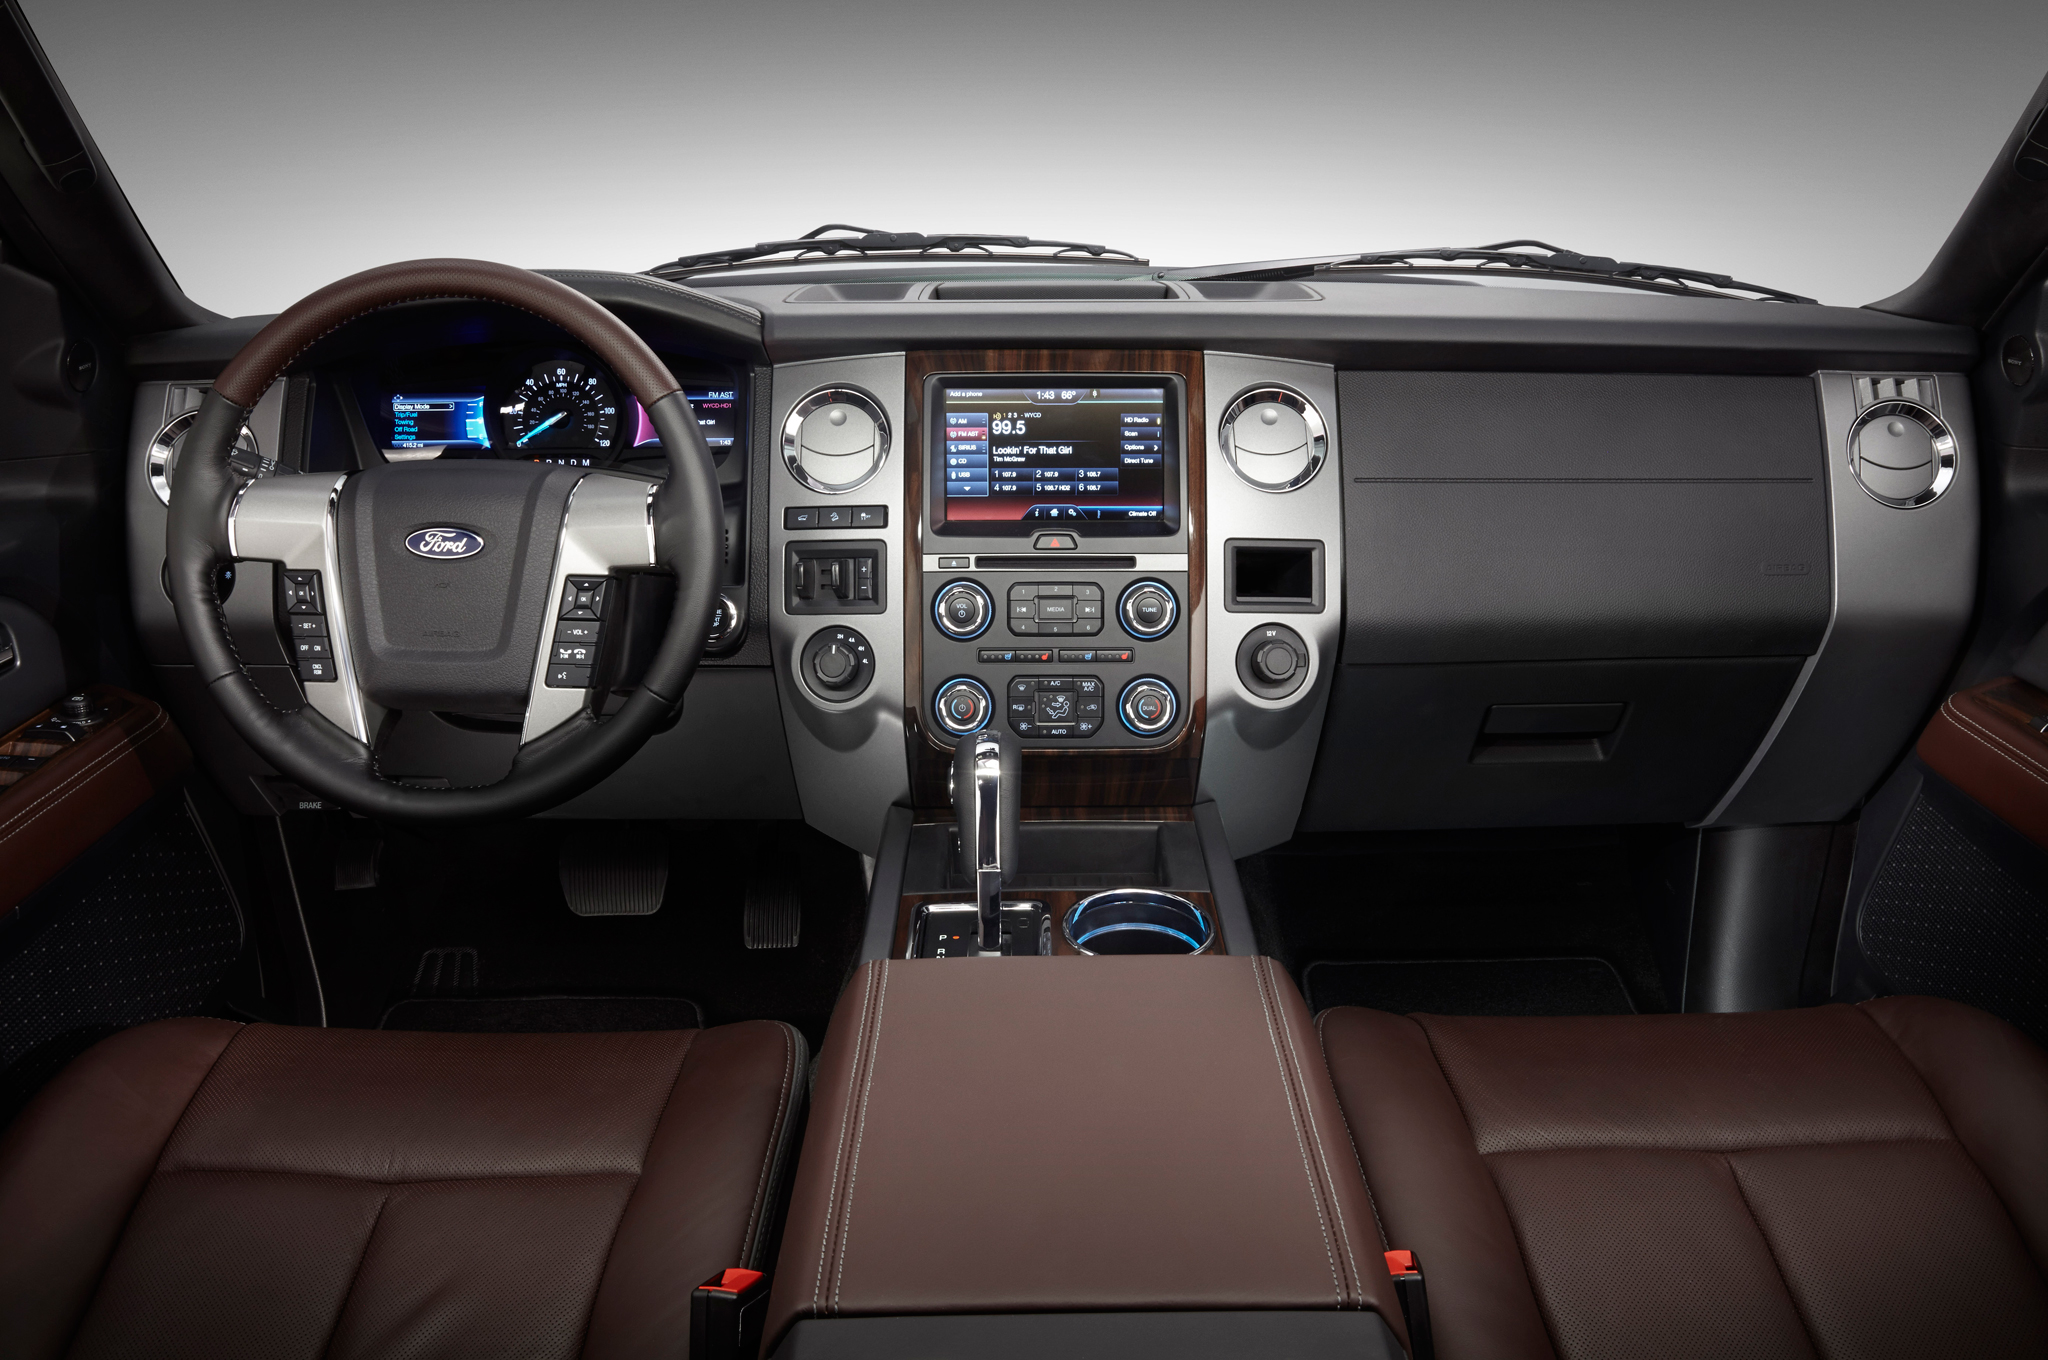 2015 Ford Expedition Front Interior and Dashboard